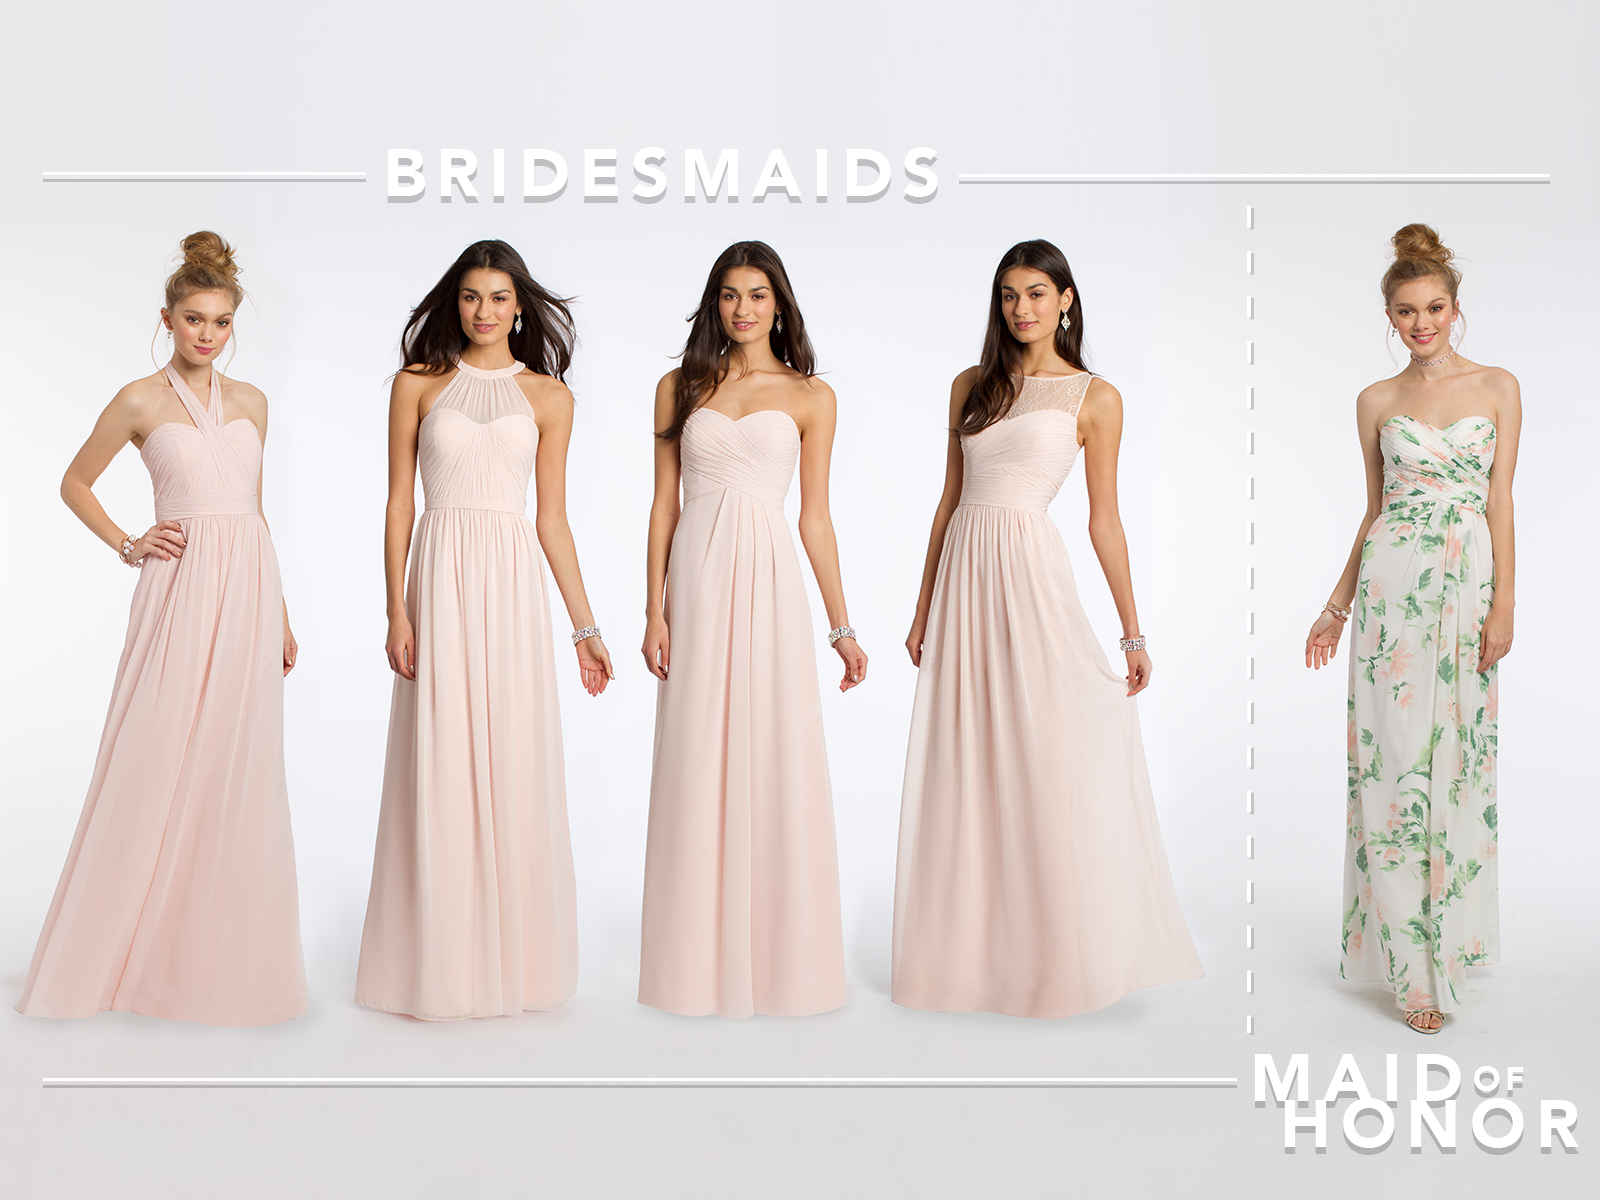 Jess and natalies top bridesmaid dresses camille la vie petal pink and print bridesmaid dresses by camille la vie ombrellifo Images